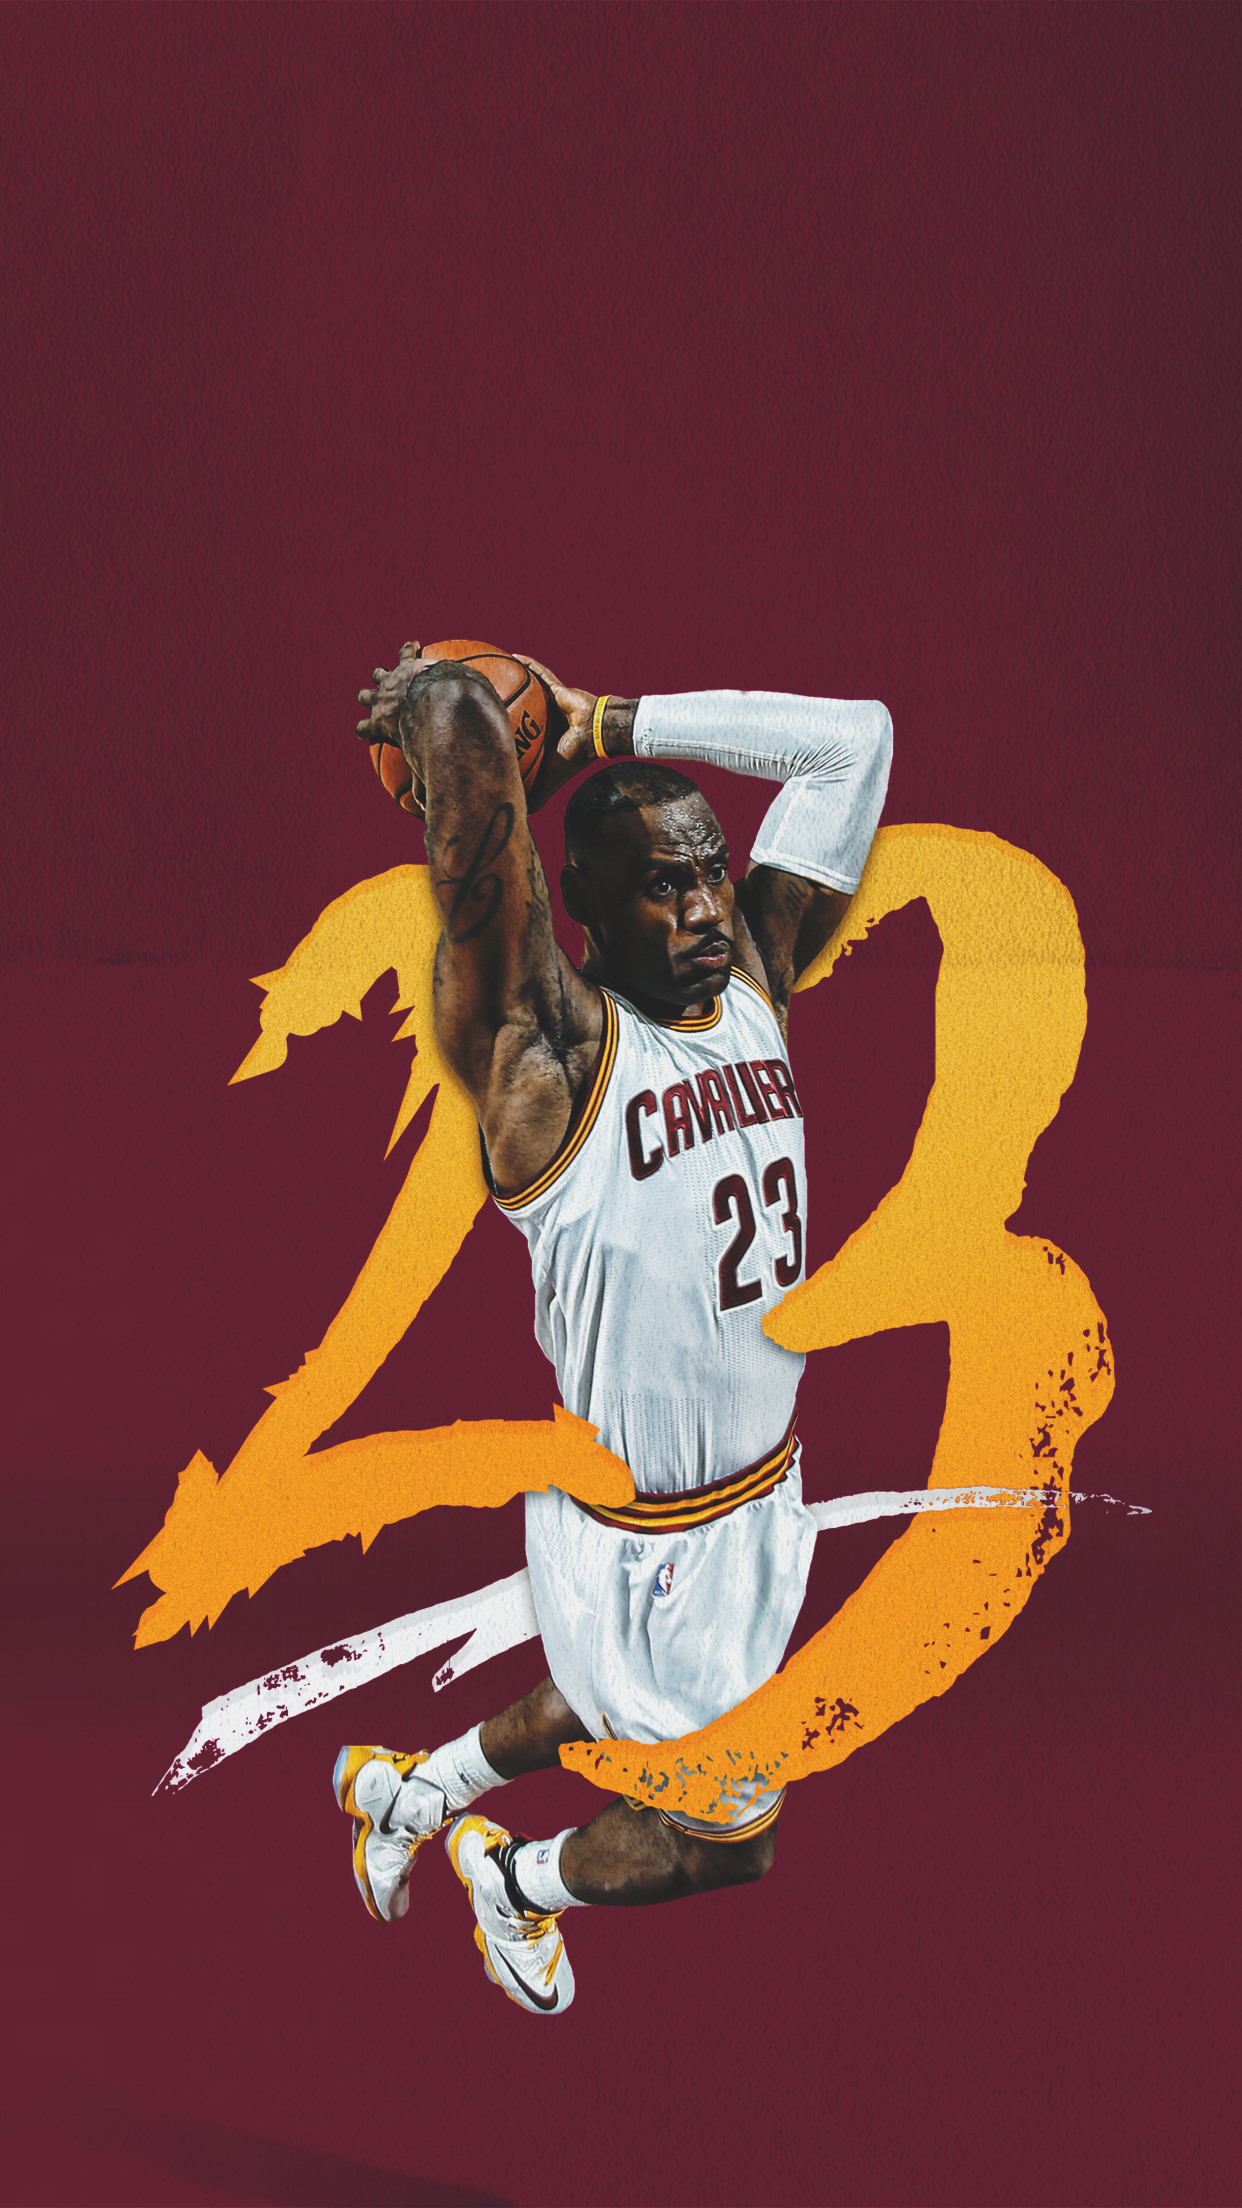 1920x1080 Champions Cleveland Cavaliers Wallpaper HD In Basketball Wallpapers